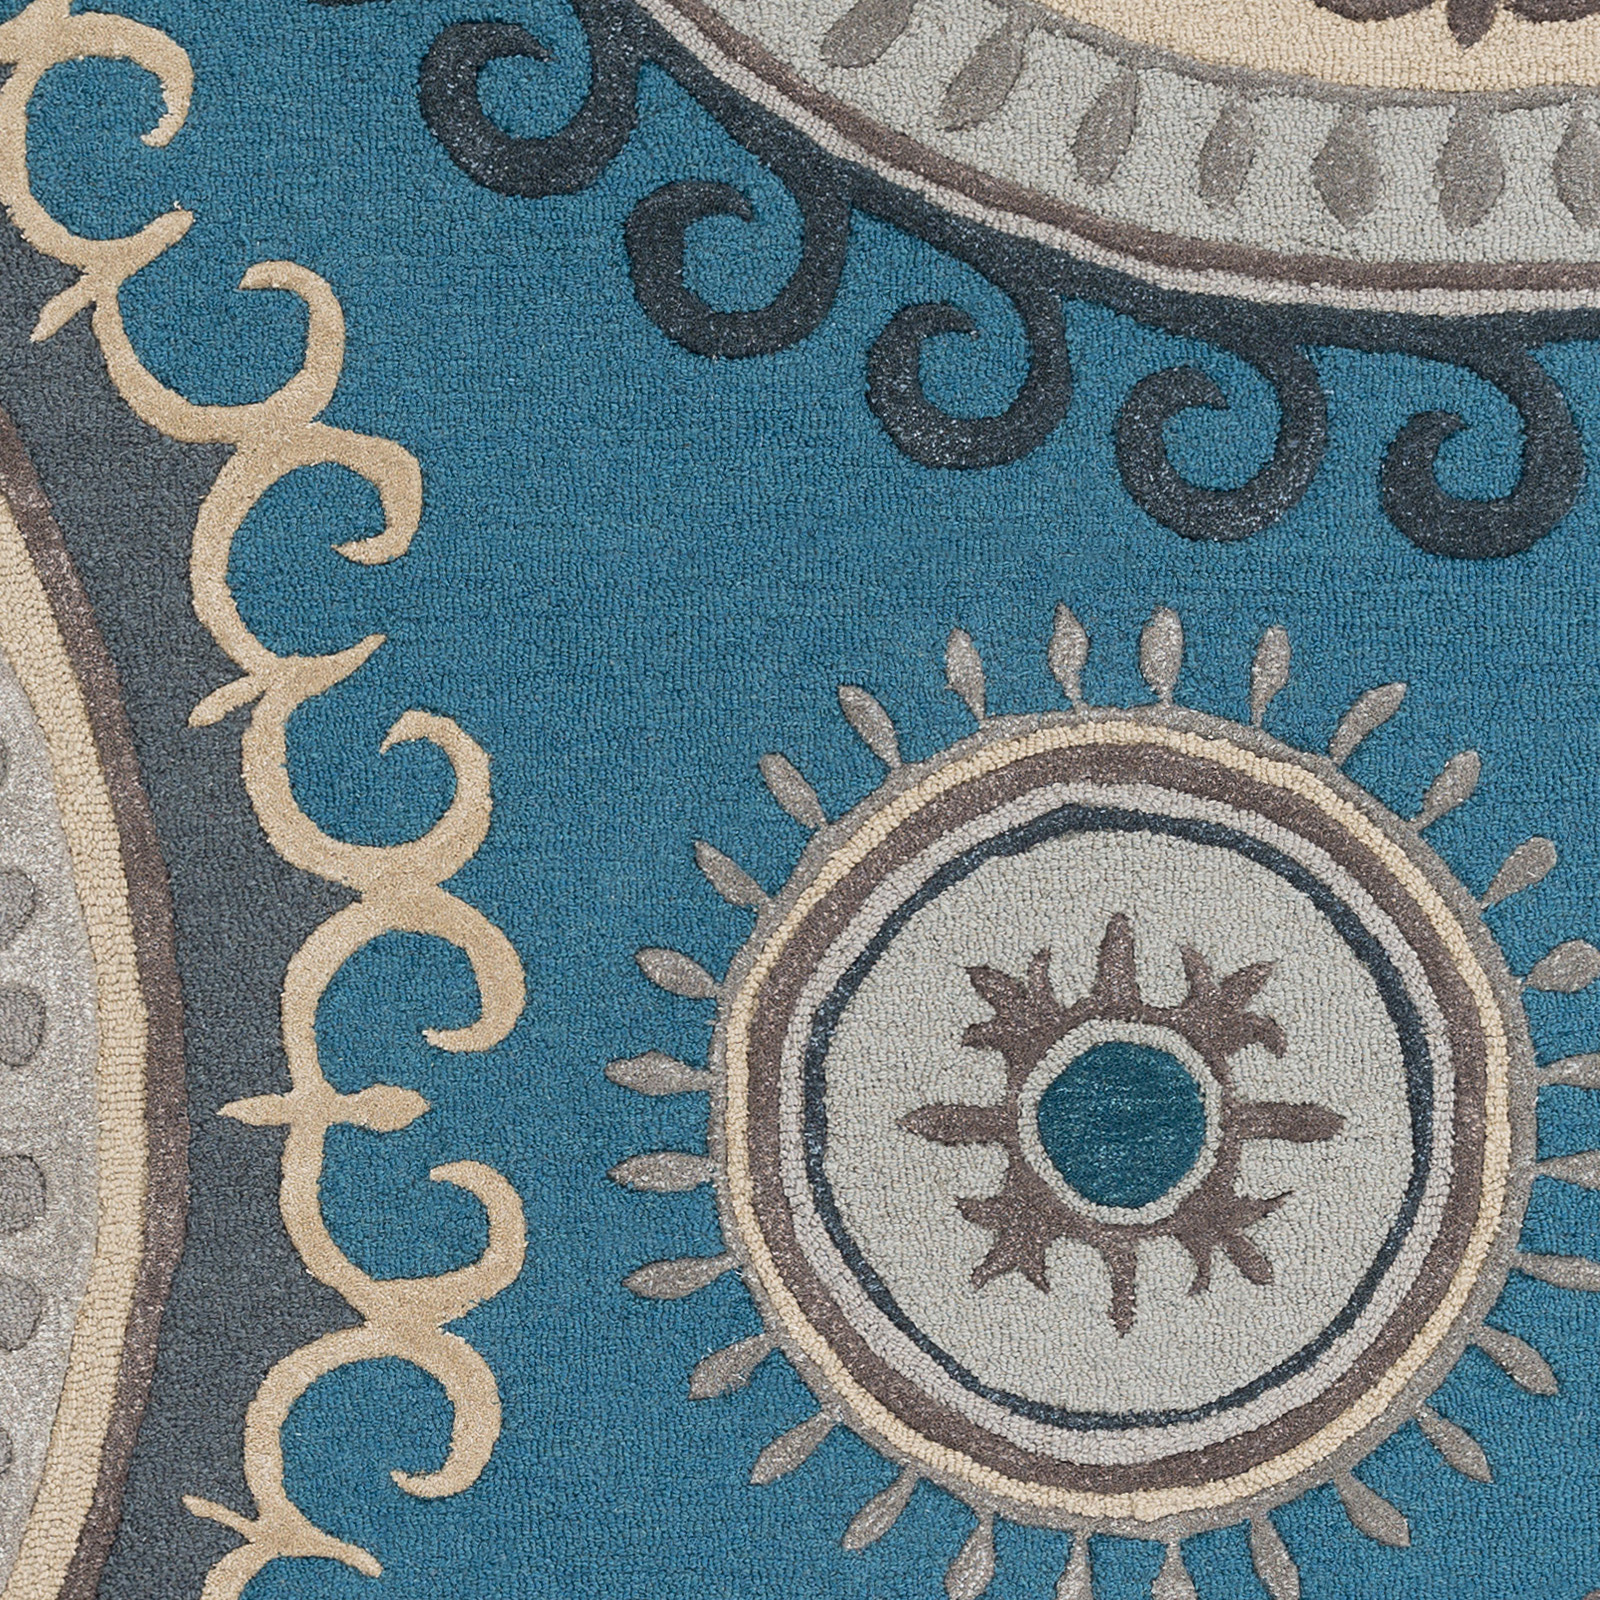 Artistic Weavers LOUNGE LGE-2239 Alanna Teal/Grey Rug